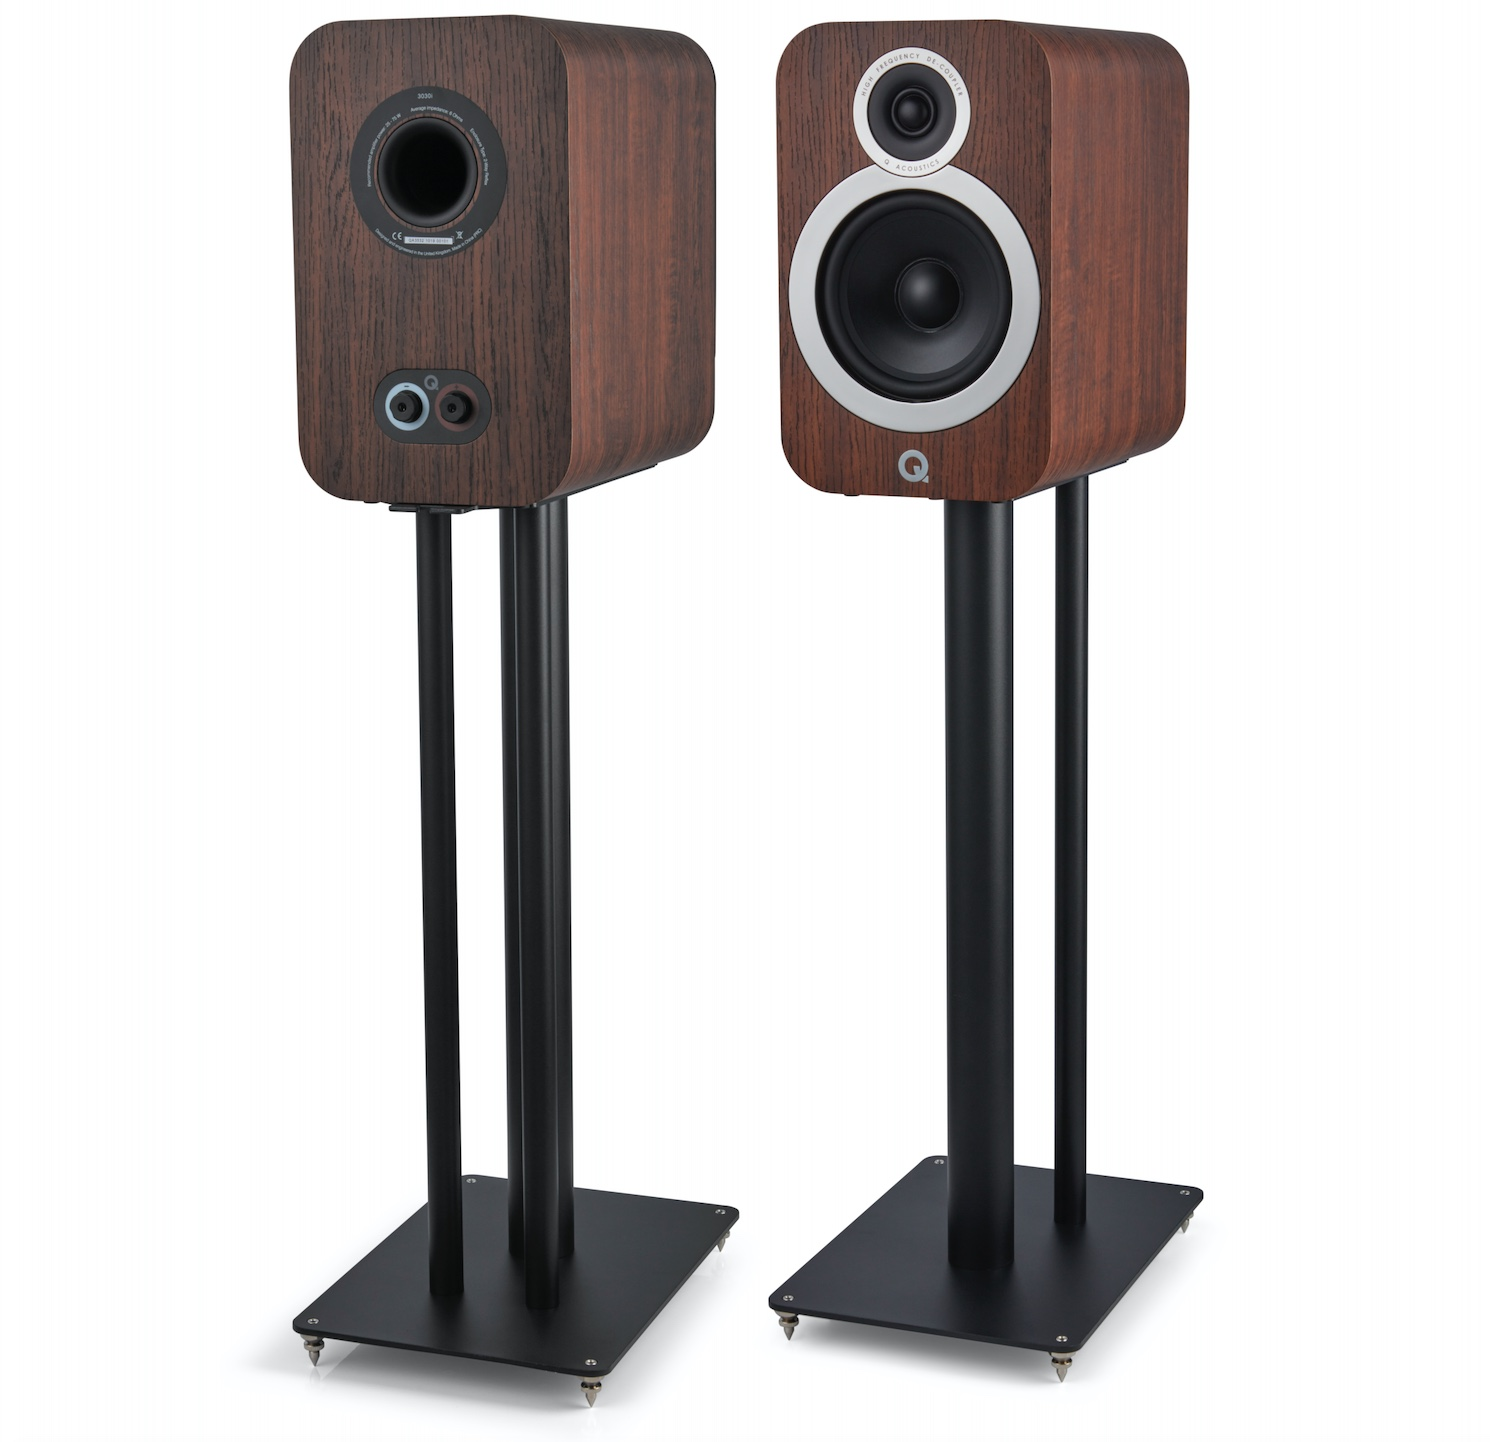 Q Acoustics Launches 3030i Standmount Loudspeaker